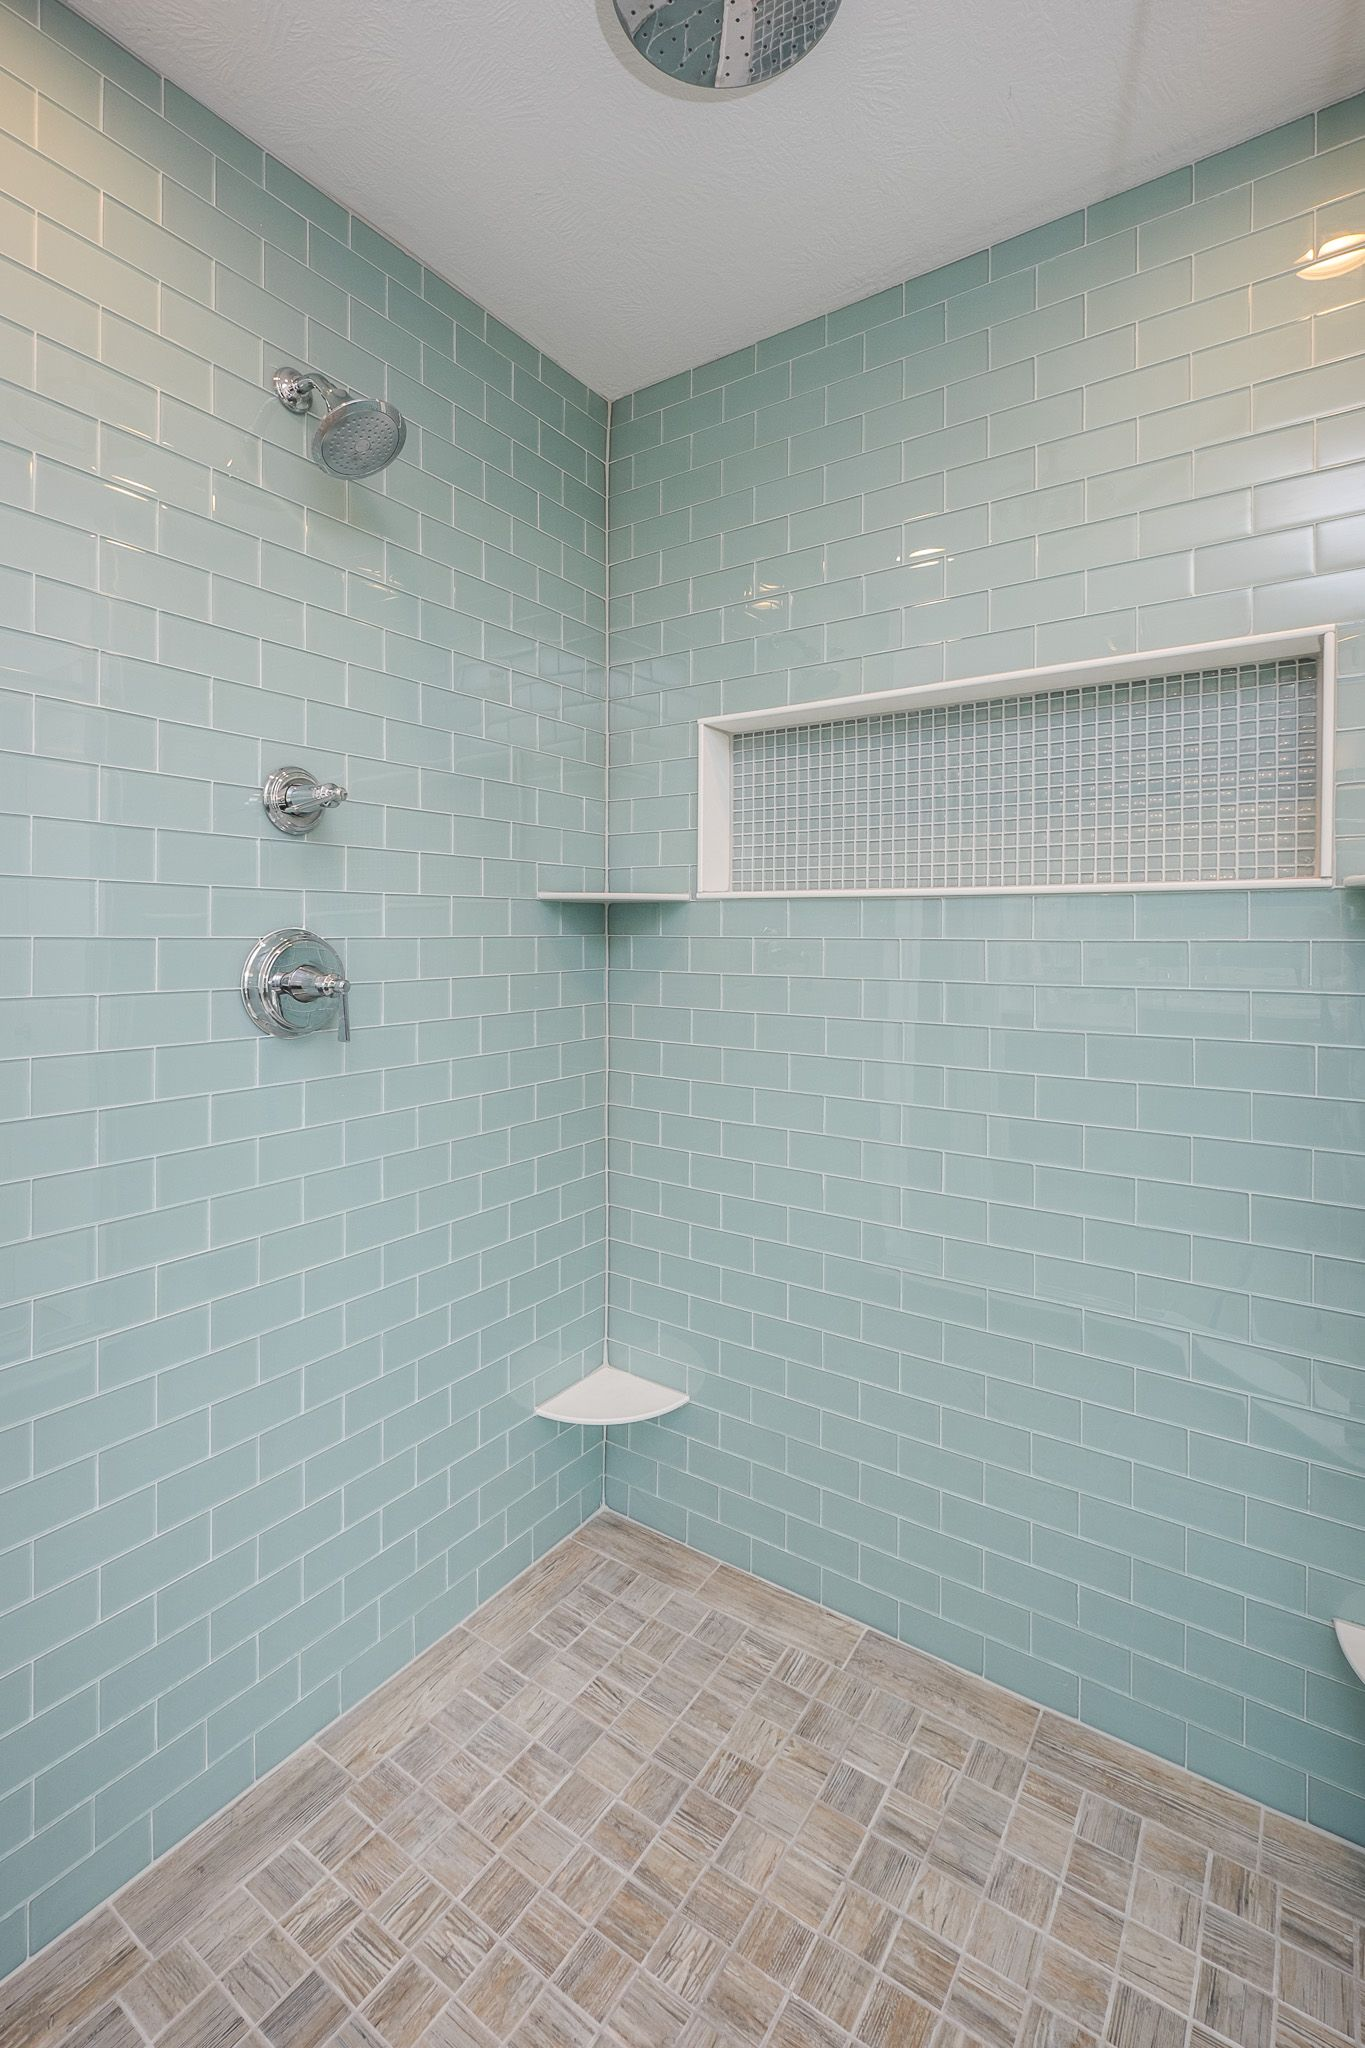 Gorgeous Tile Shower, Two-Tone Tile, Niche for Shampoo Bottles ...